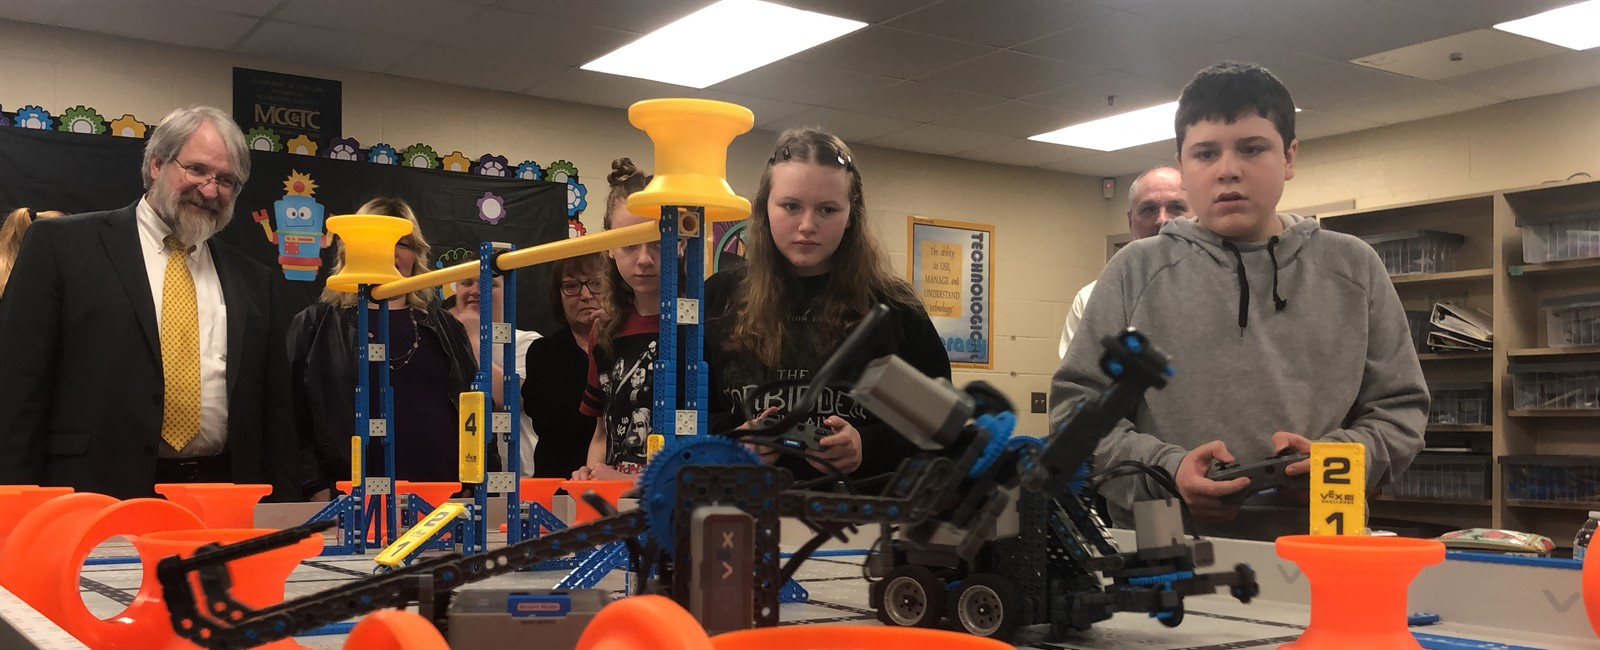 Paolo DeMaria, Ohio Department of Education's Superintendent of Public Instruction, watches an eighth-grade robotics class.